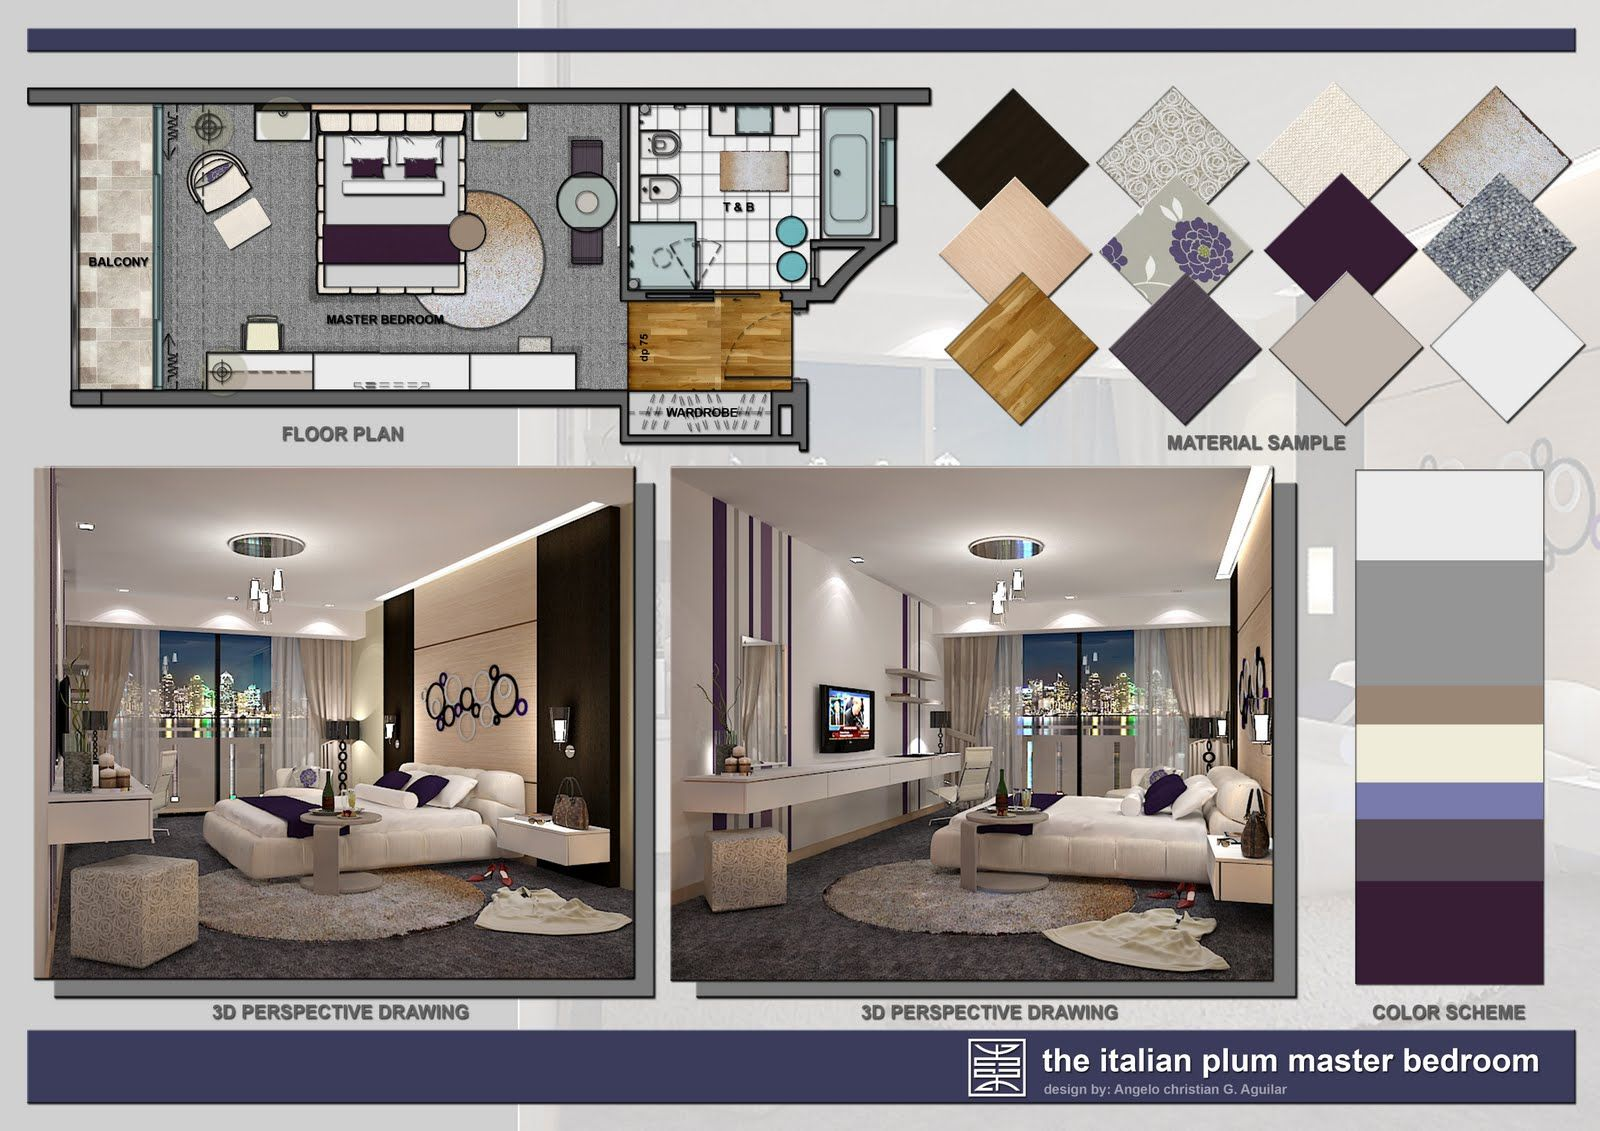 Ordinary design my room online part 2 interior design Design my room online